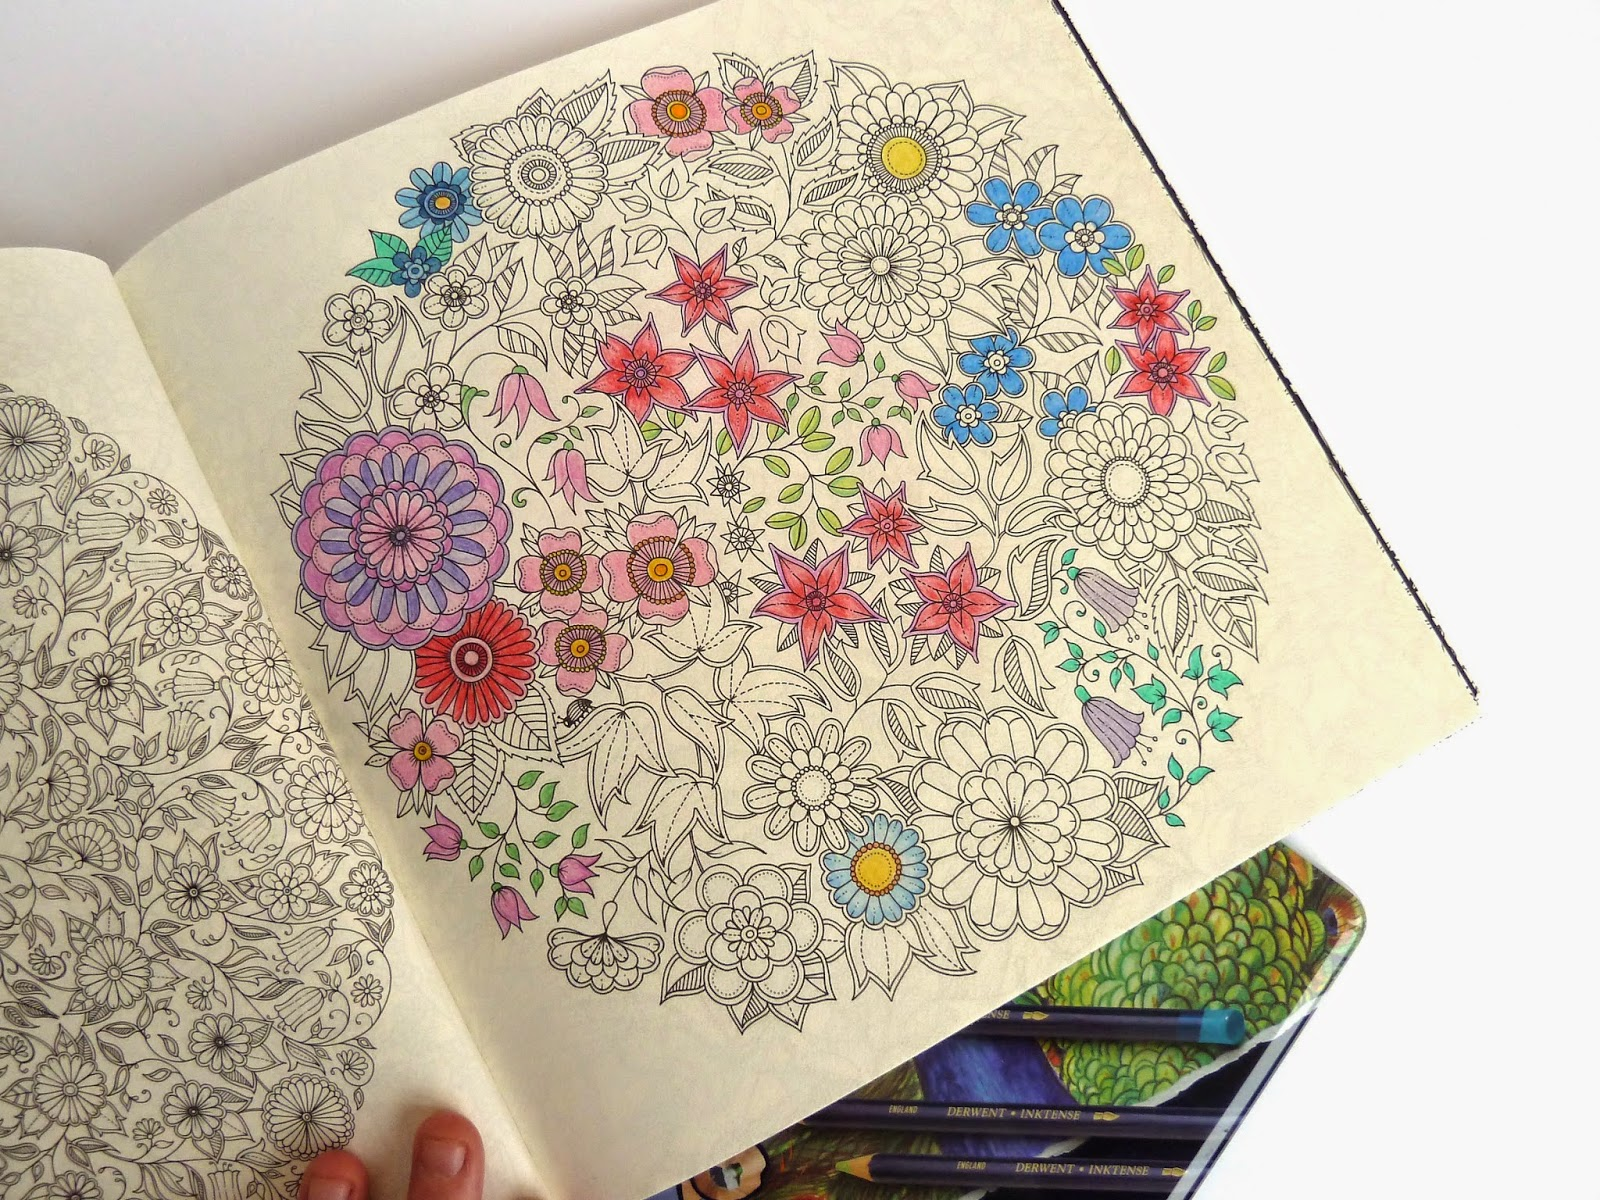 a coloring book for grown ups secret garden review - My Secret Garden Coloring Book